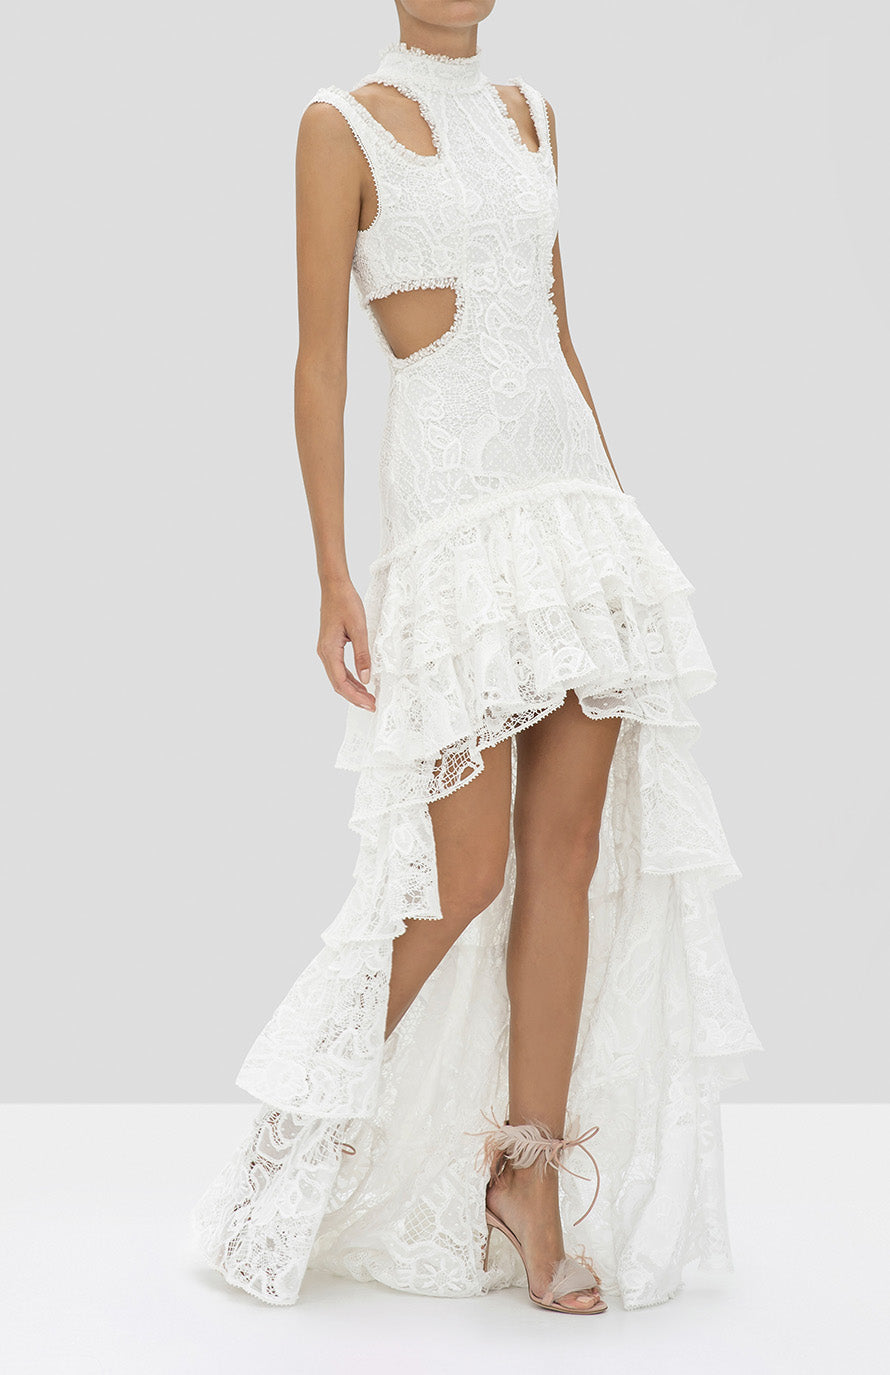 Alexis Varenna Dress in White from the Holiday 2019 Ready To Wear Collection - Rear View